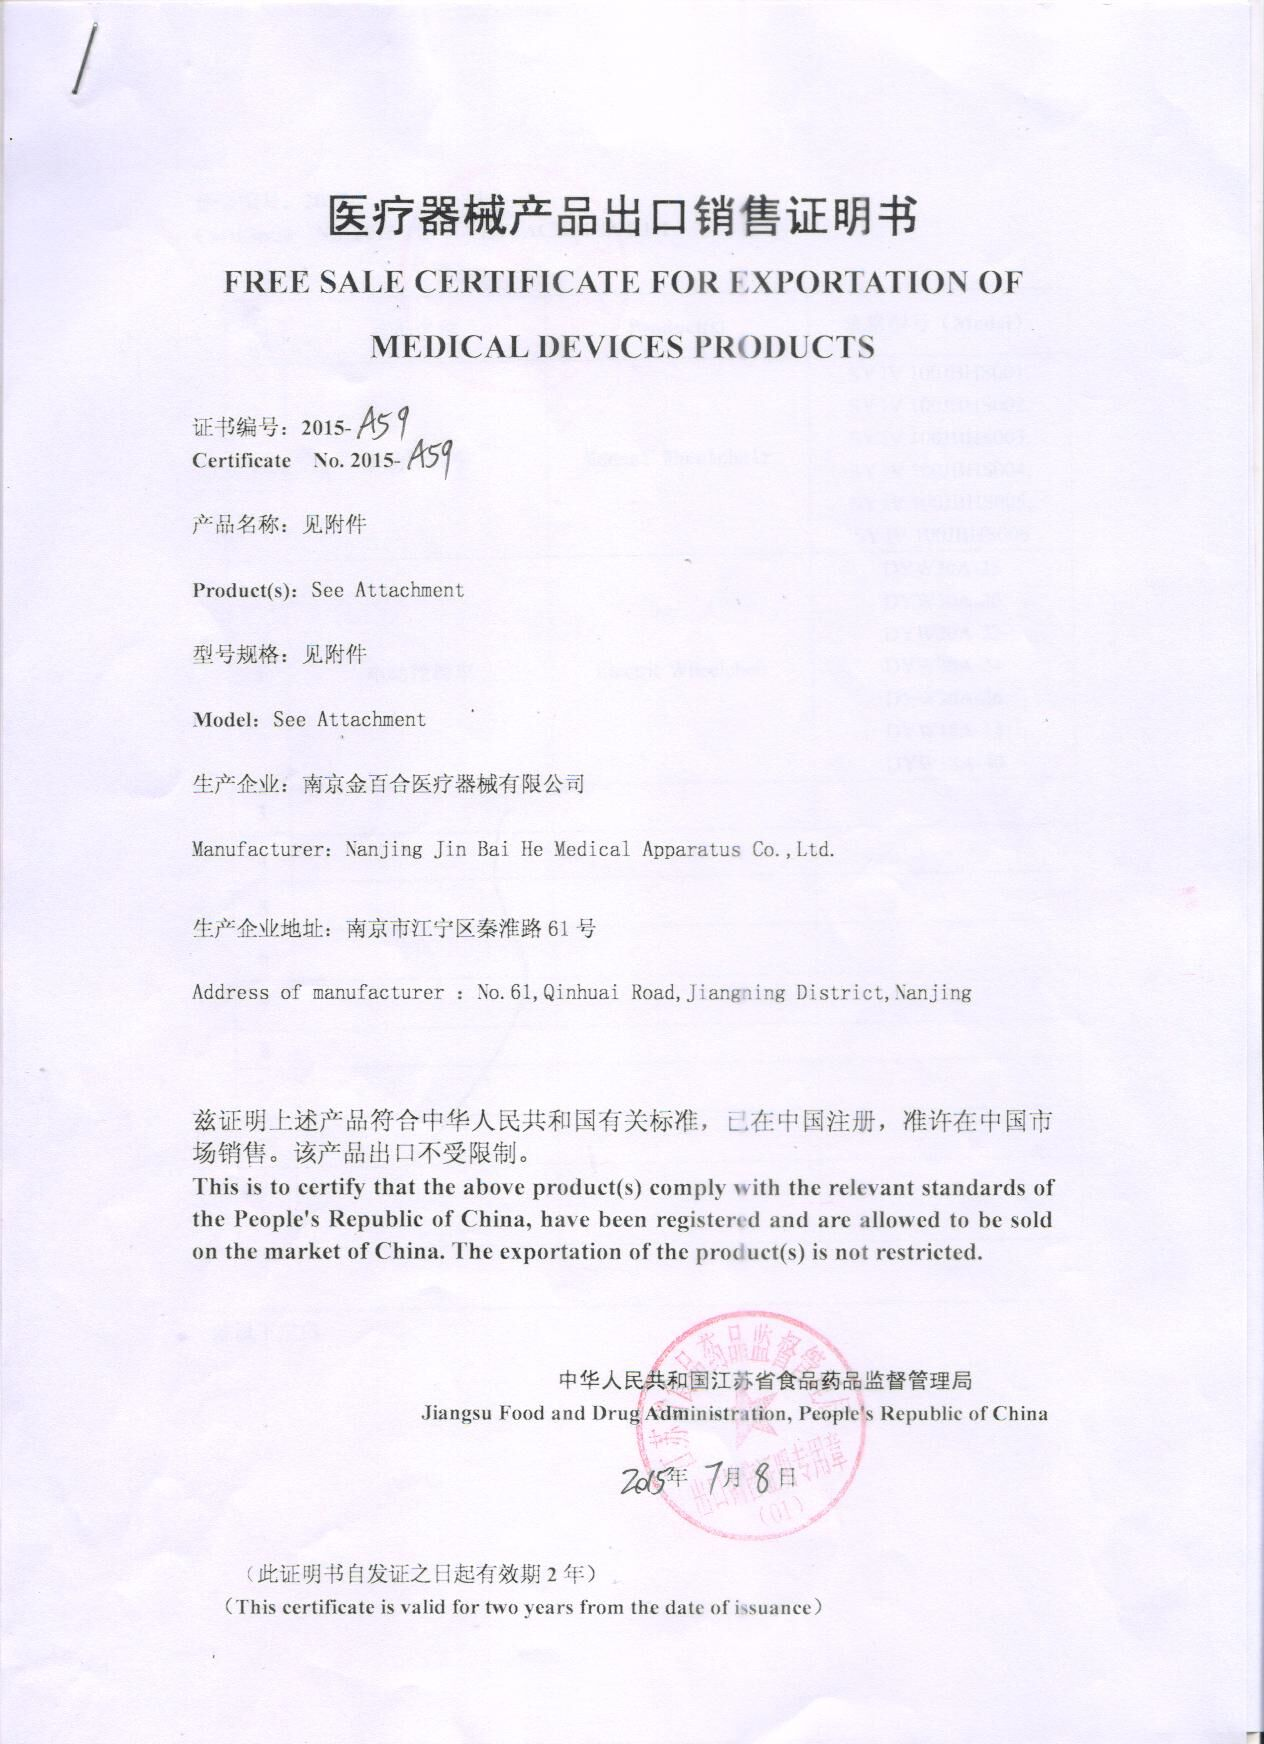 free sale certificate for exportation of medical device products